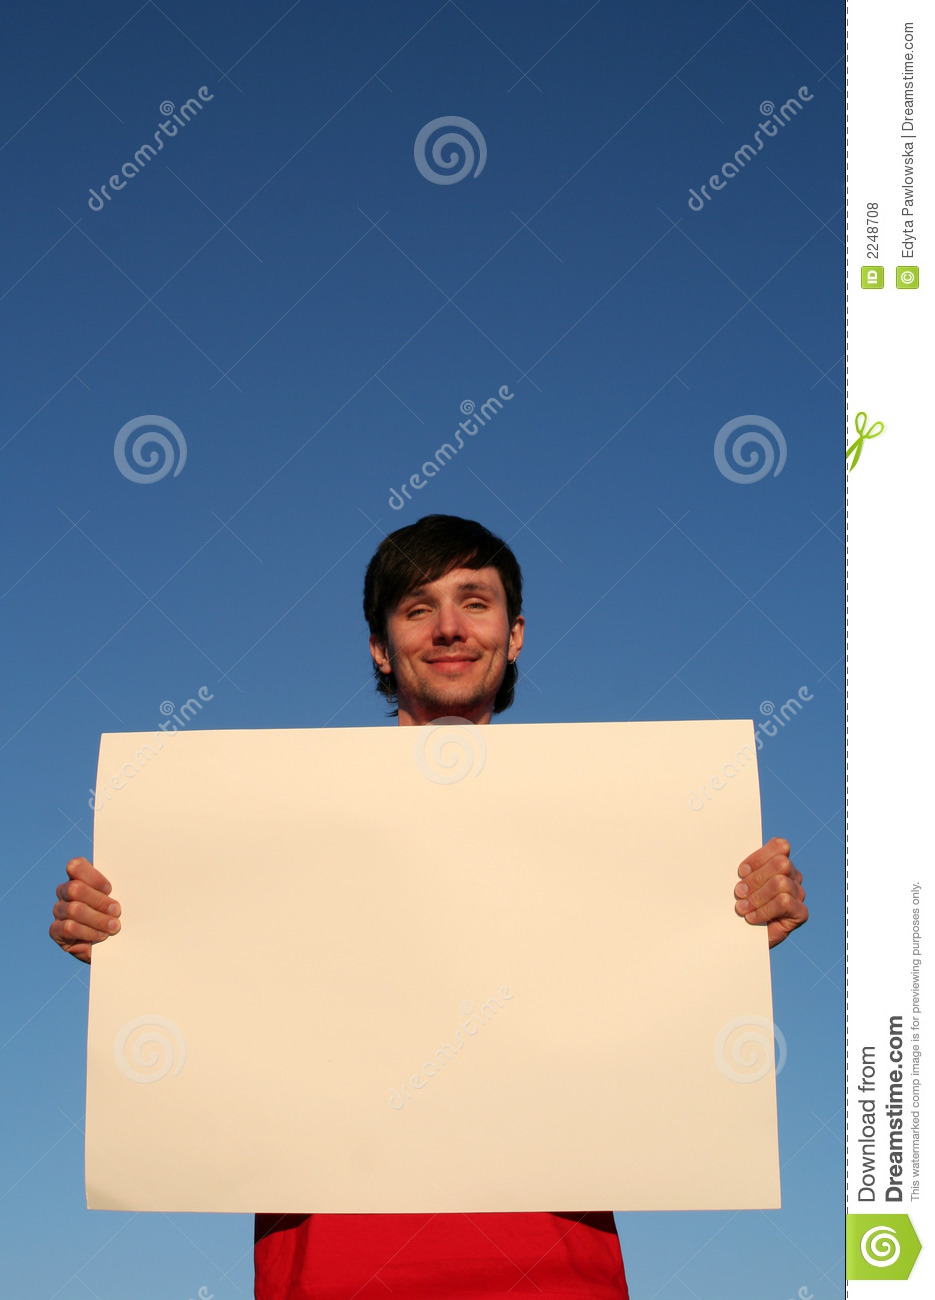 Man Holding Blank Poster Board Royalty Free Stock Photos - Image ...